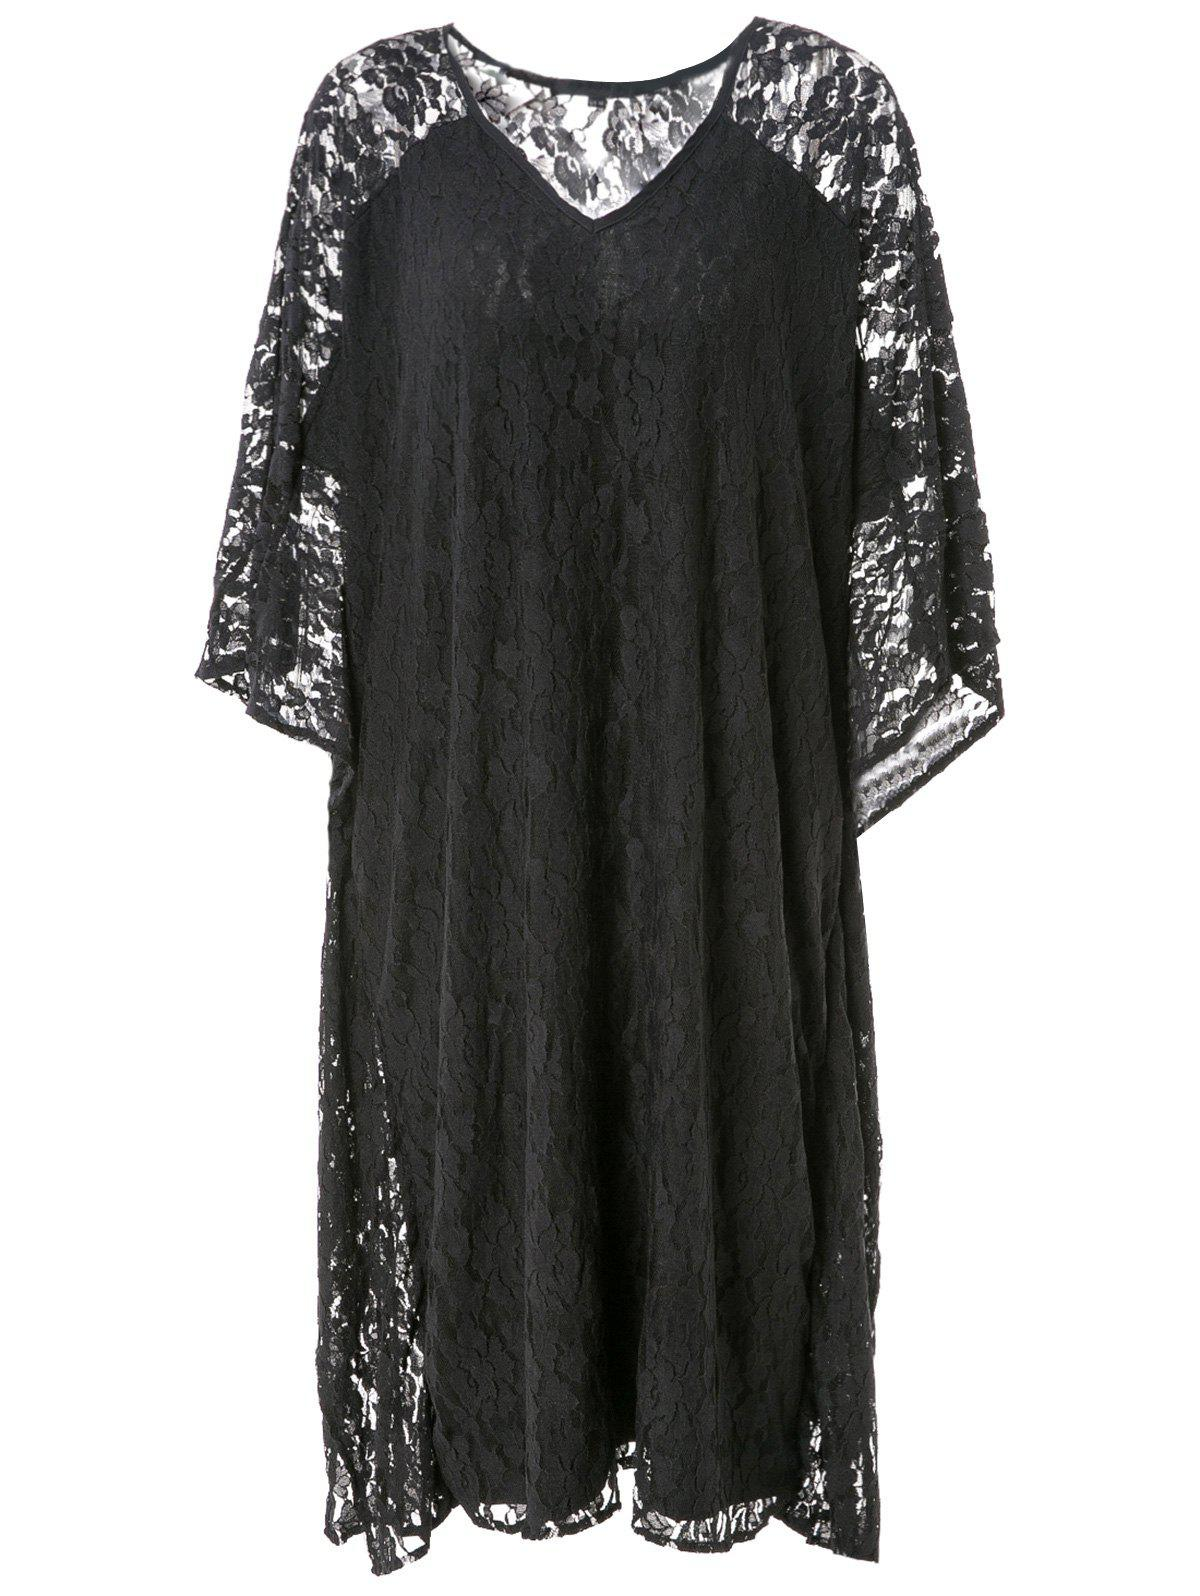 Store Hollow Out Lace Kimono Sleeve Dress